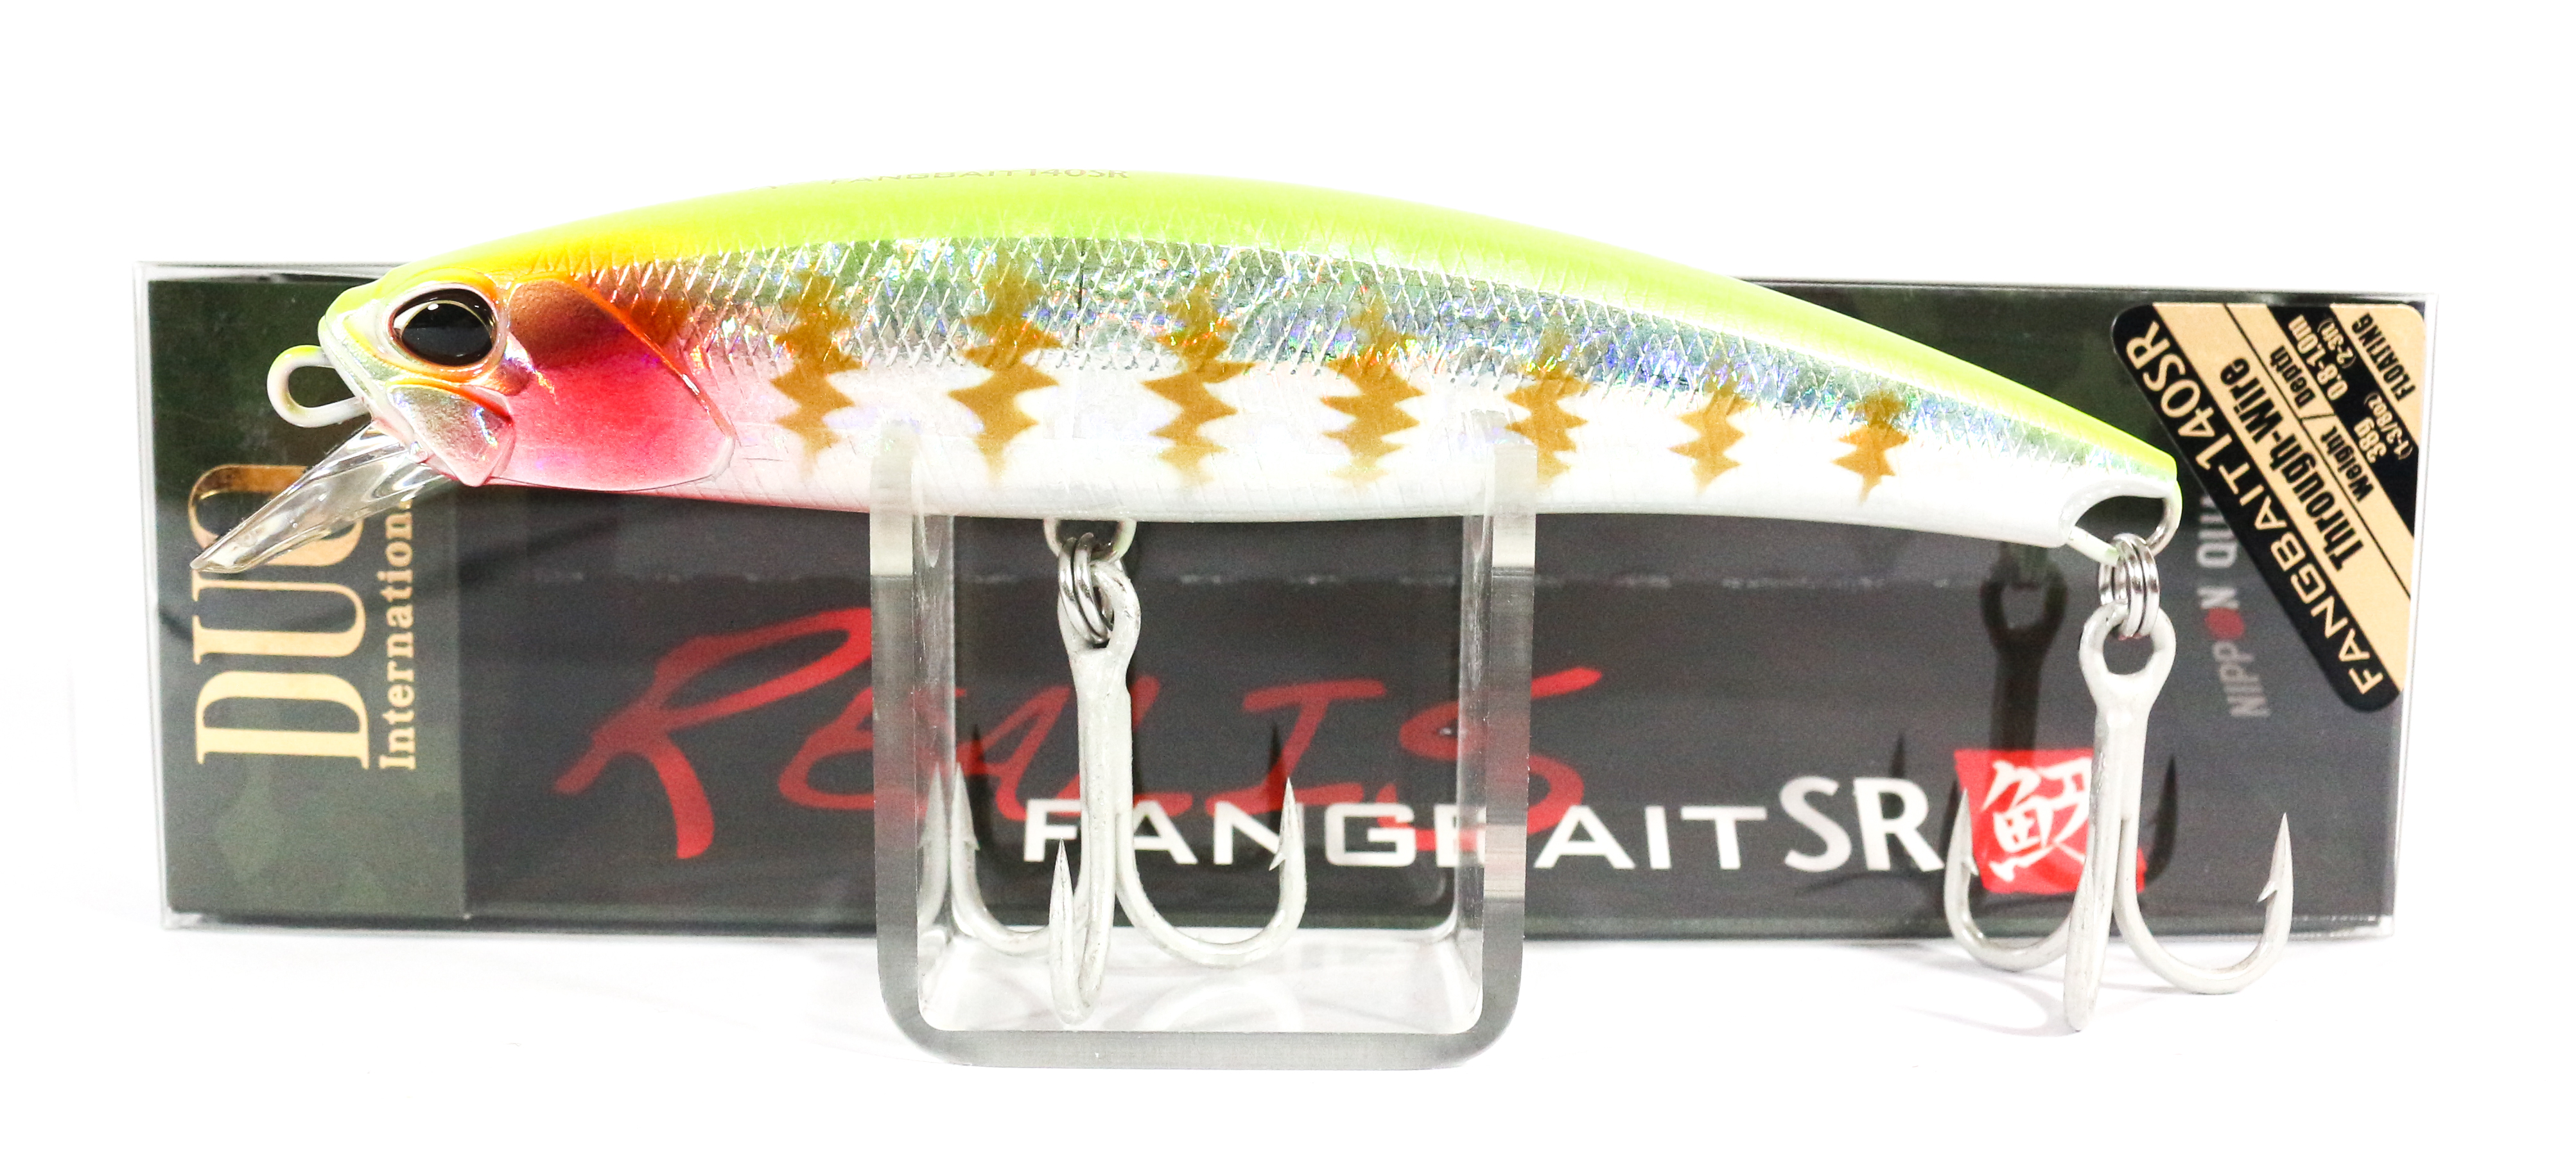 Duo Realis Fangbait 140SR Floating Lure ADA3305 (3656)